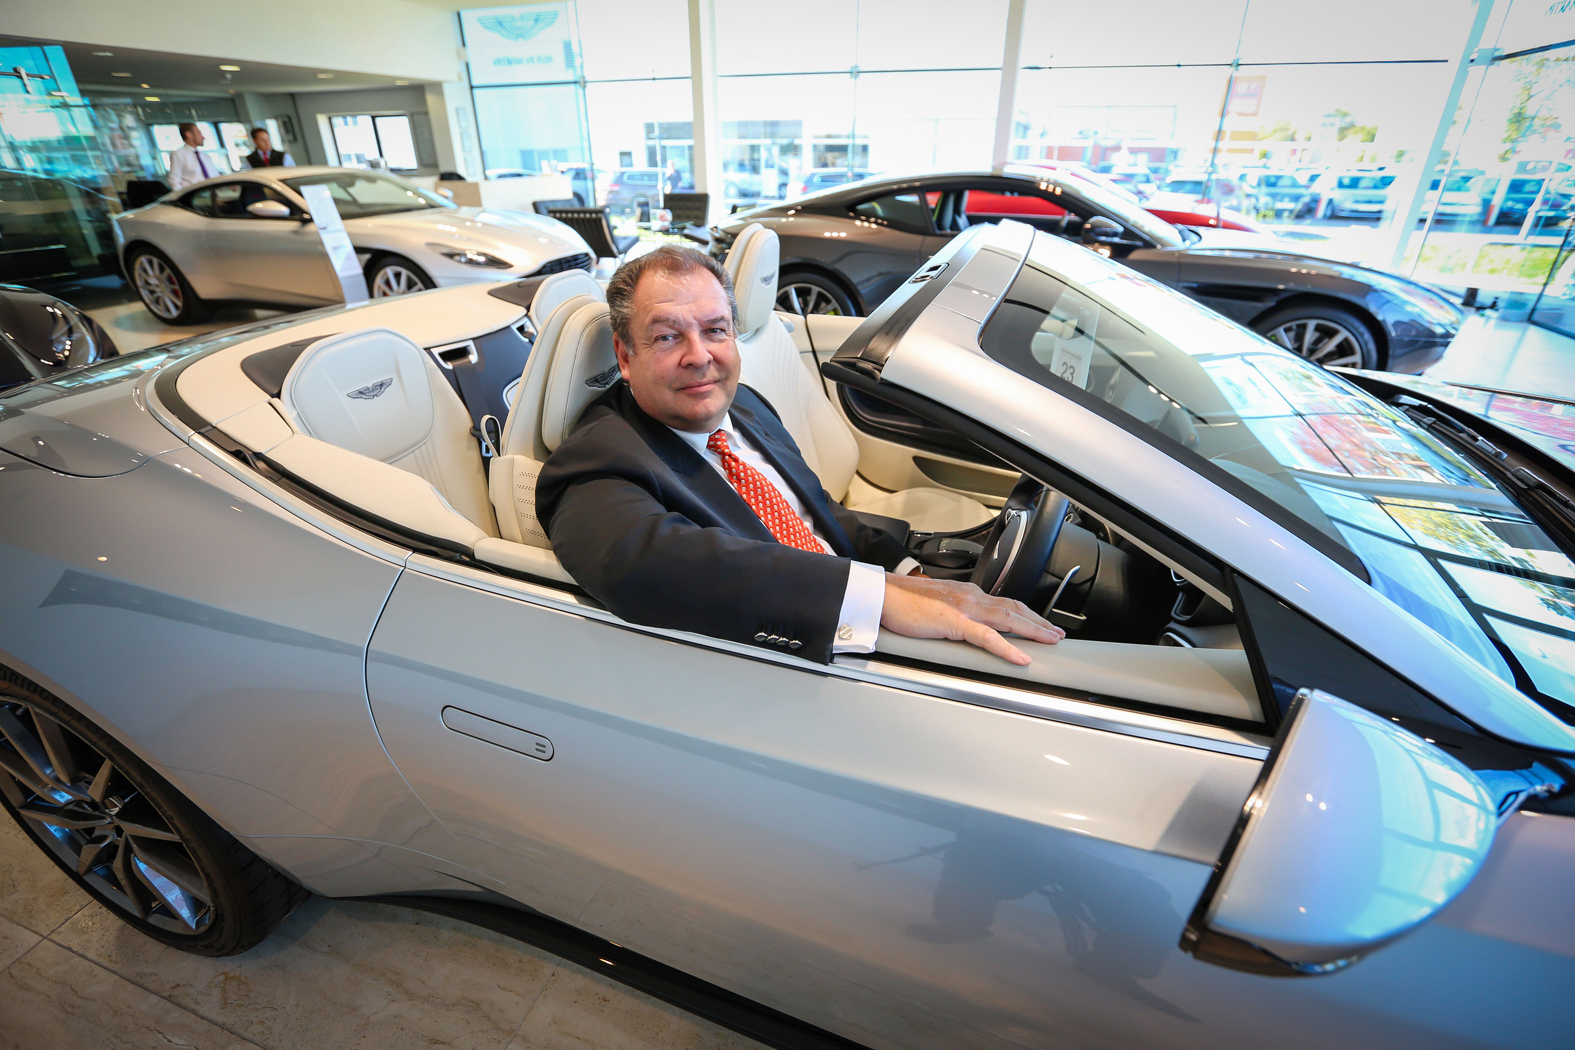 Mark Beresford at Harwoods Aston Martin dealerhsip in Chichester to promote the runner up prize for his 'Win a Mega Home' competition